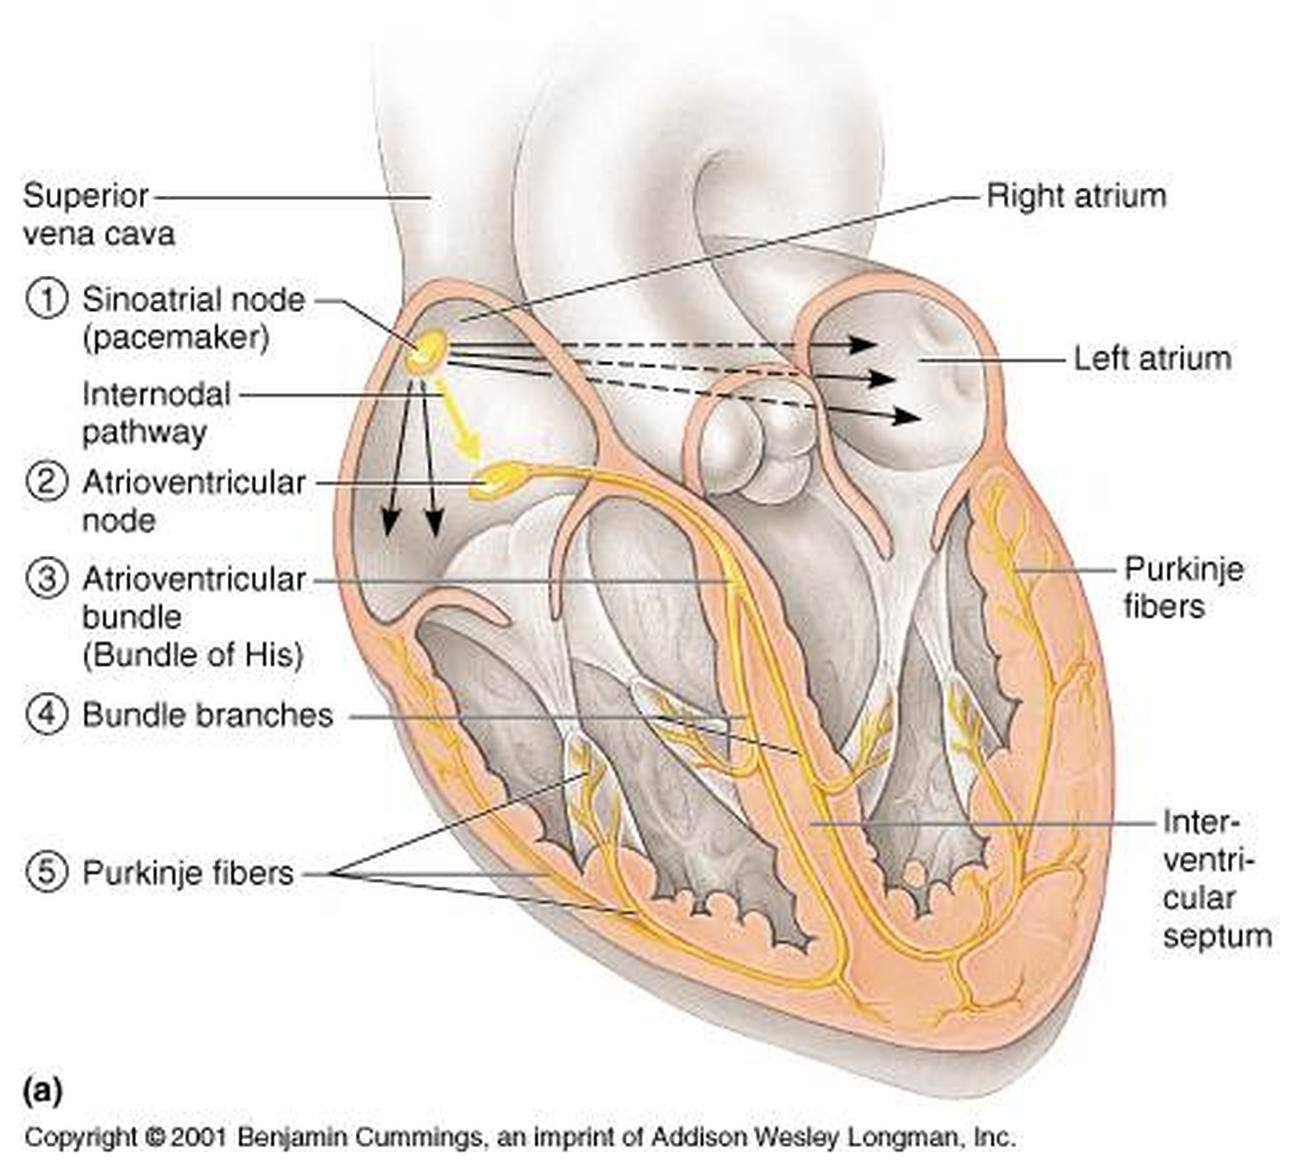 Pictures Of Atrioventricular Bundle